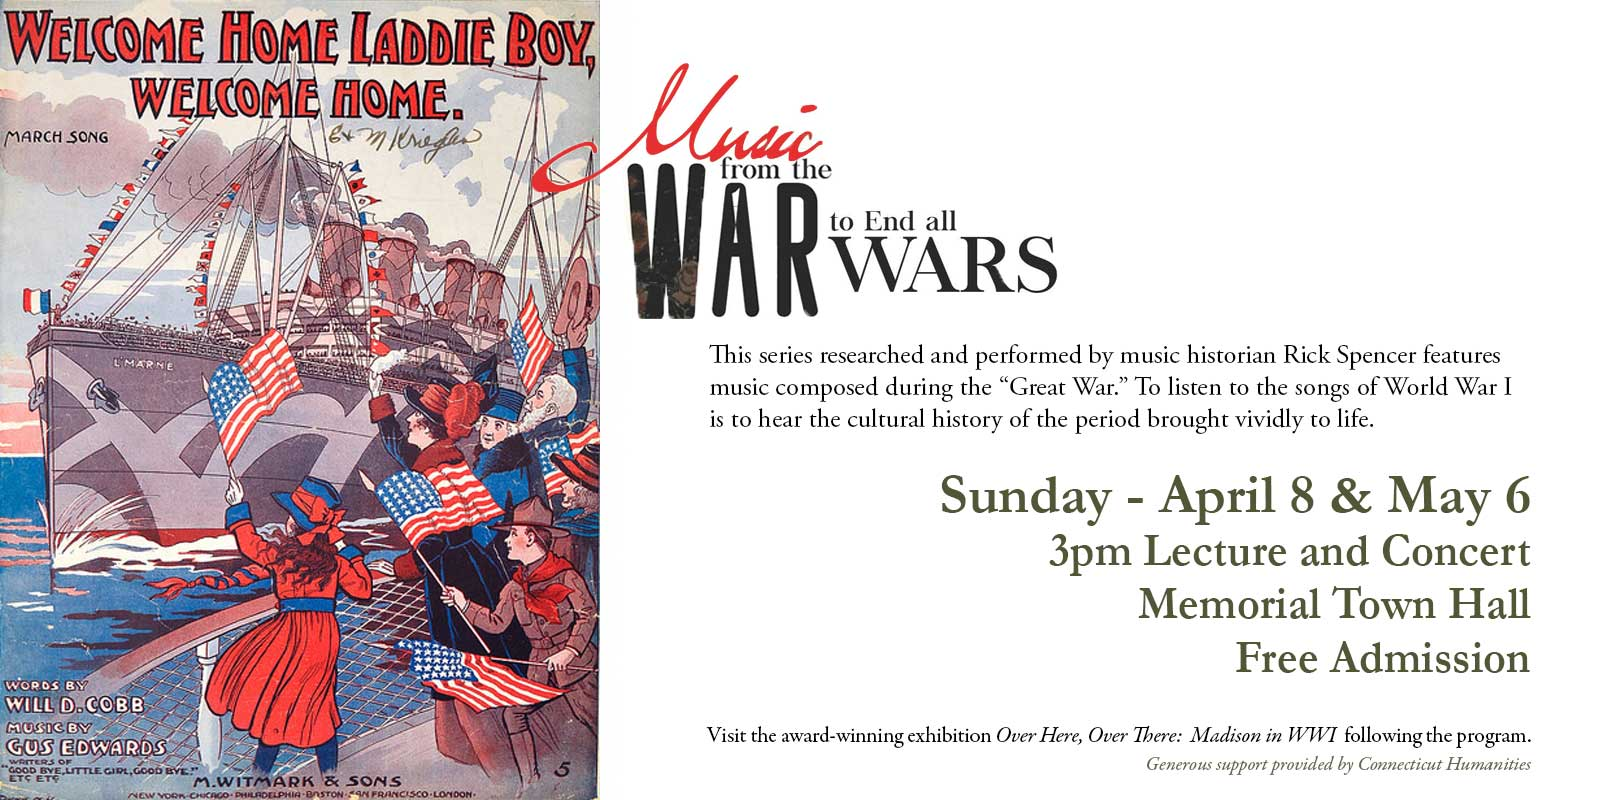 Announcement for concert series featuring songs from World War I